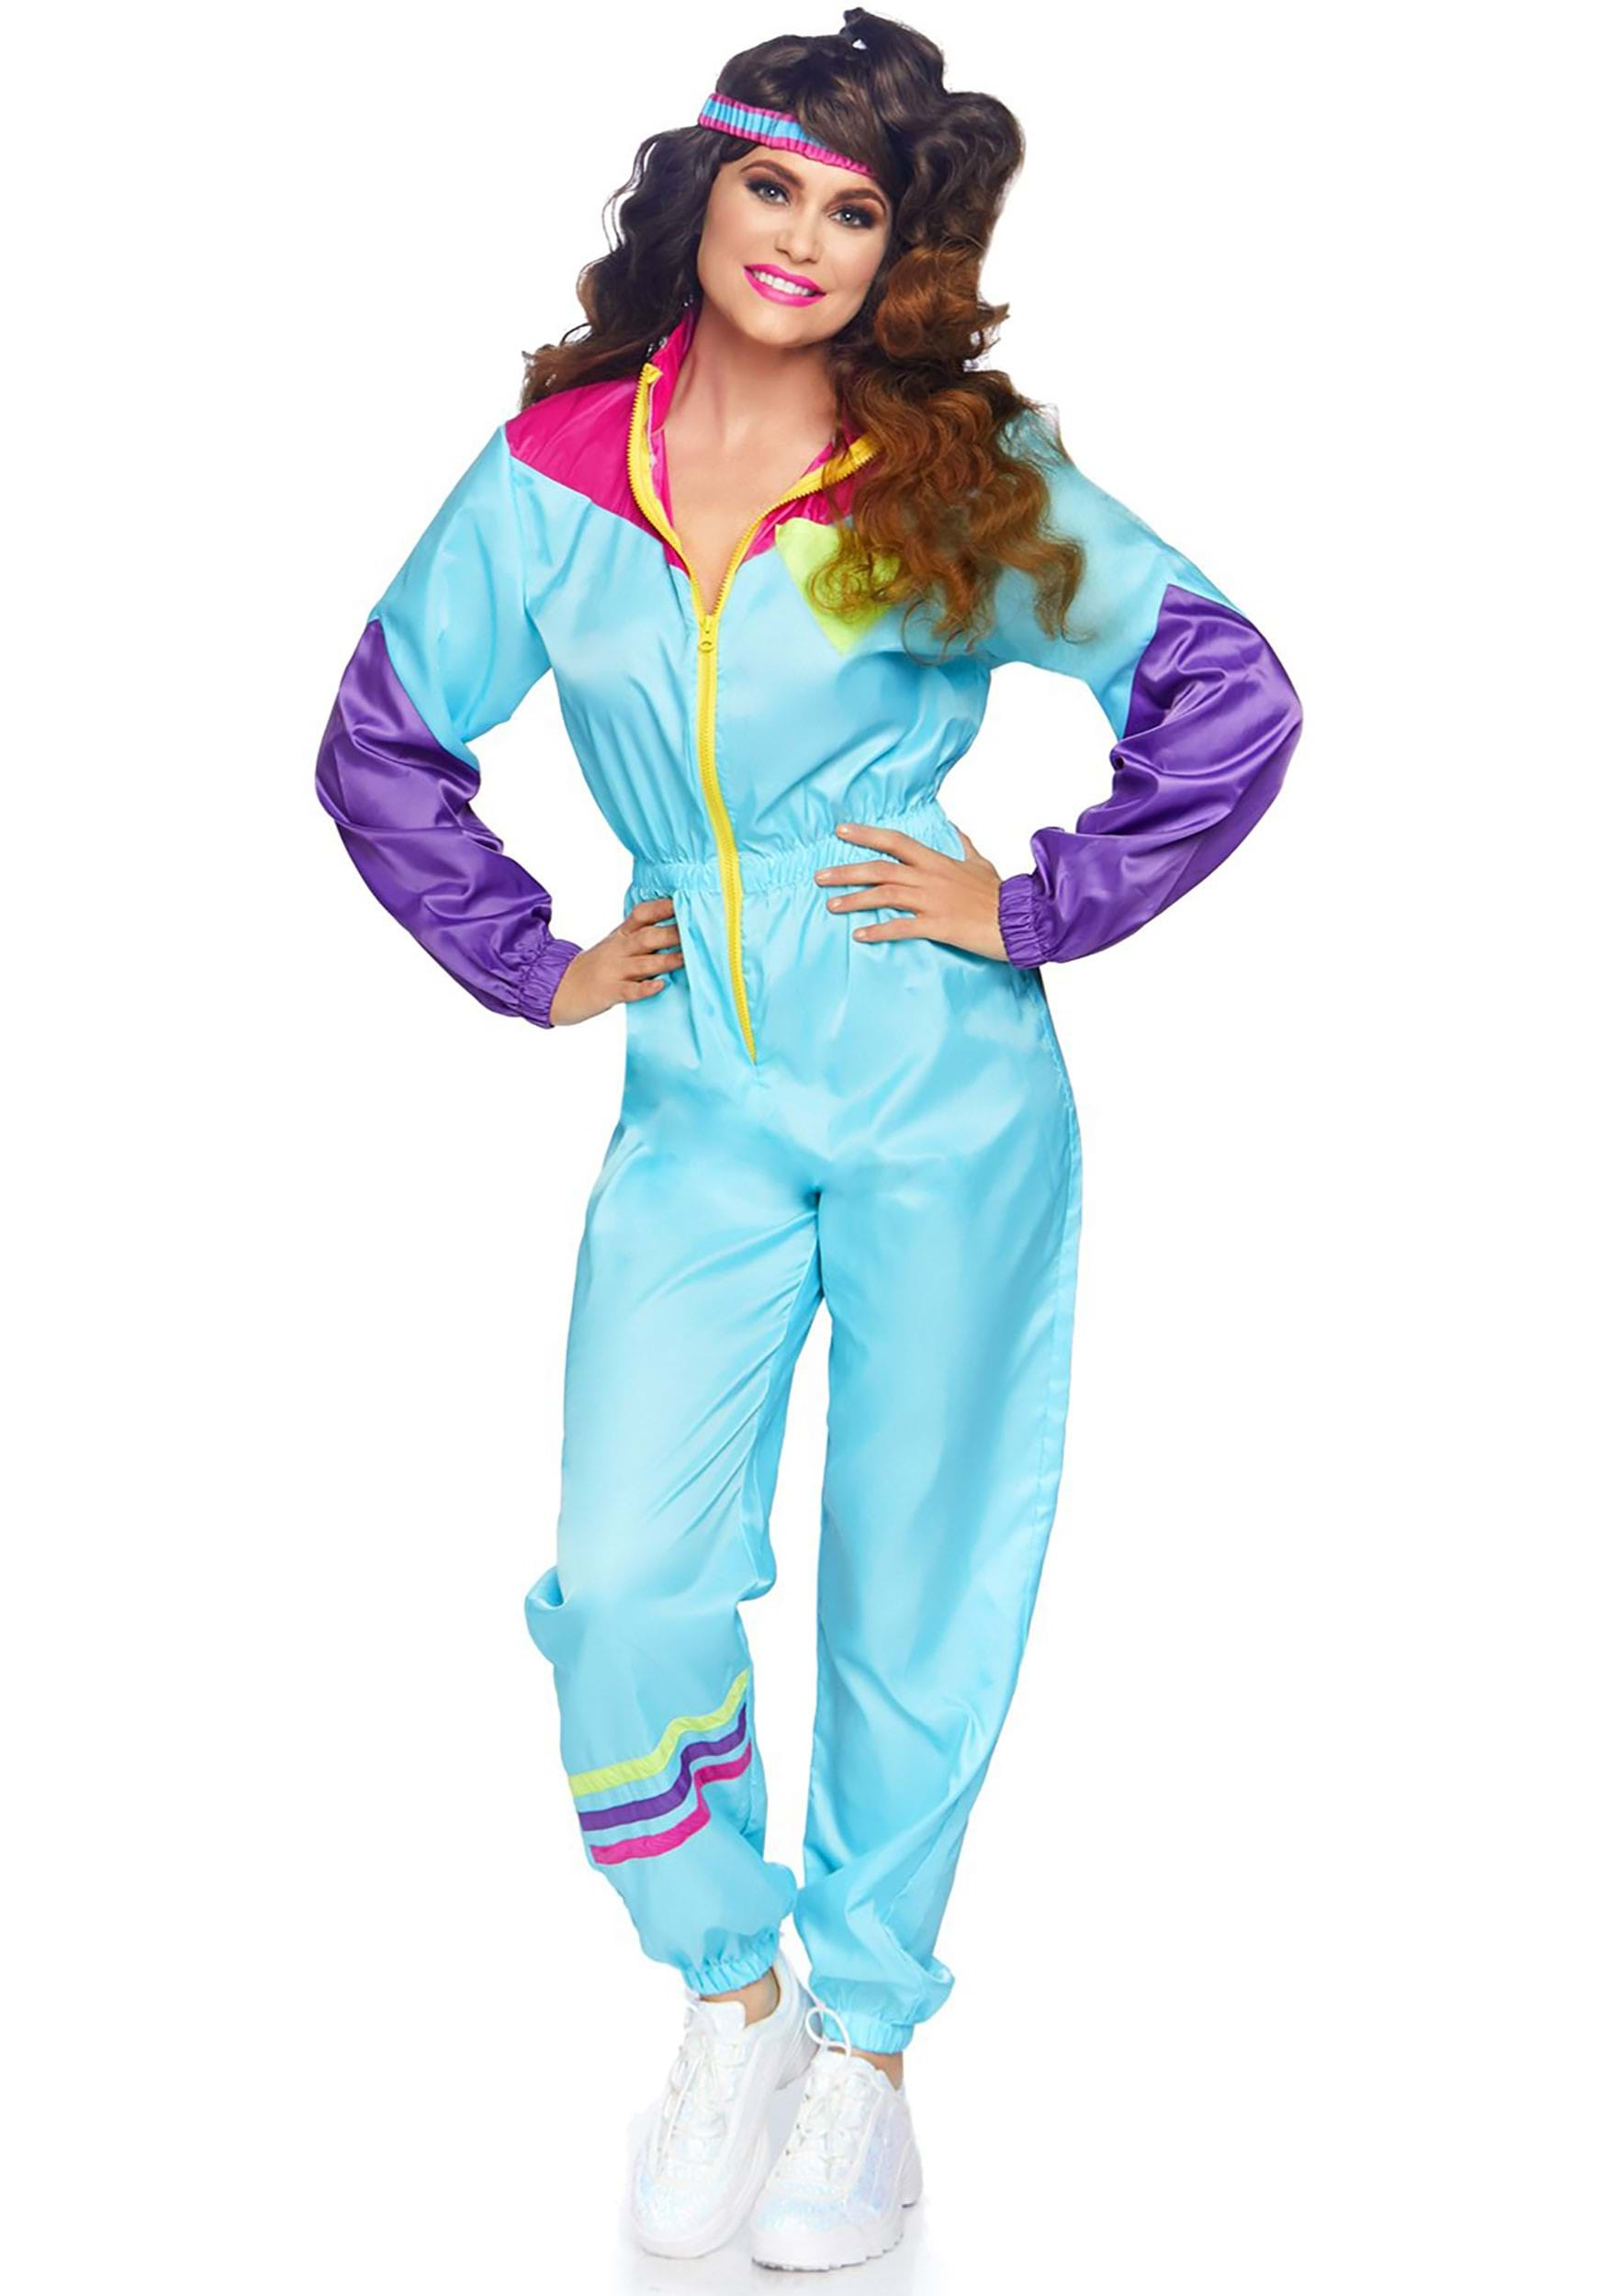 awesome 80s ski suit costume for women